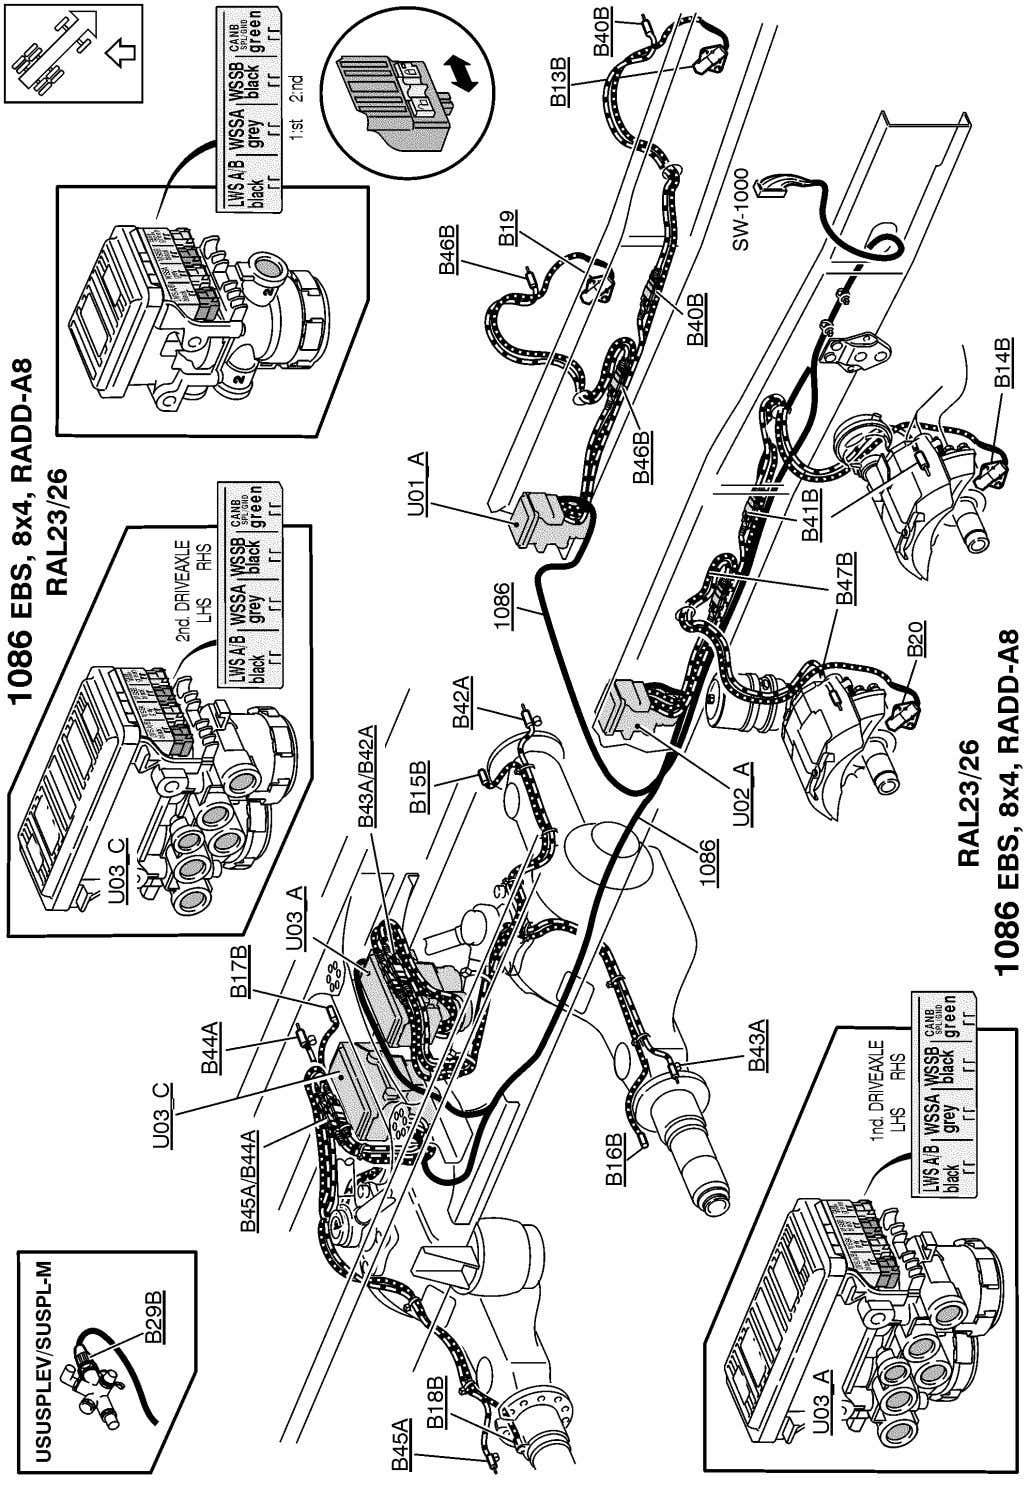 T3059947 Wiring diagram Page 191 (298)